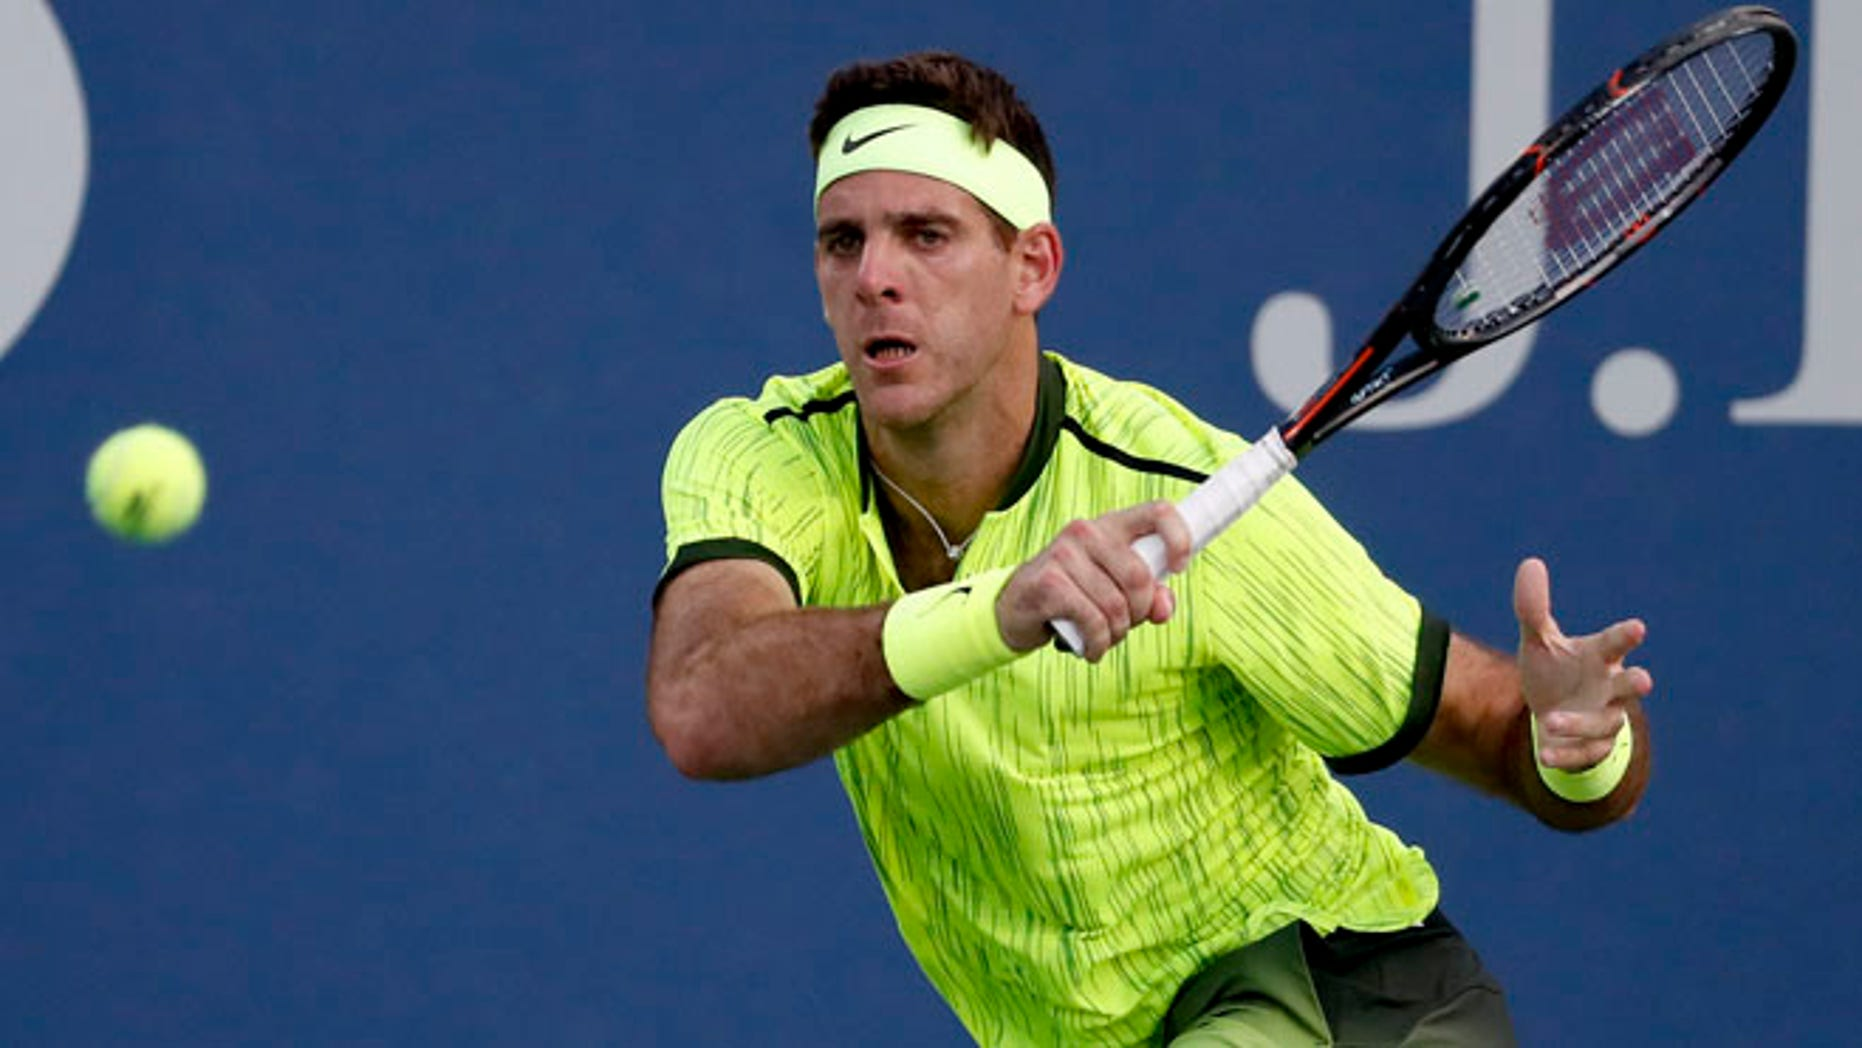 Juan Martin del Potro returns a shot to Diego Schwartzman at the U.S. Open , Tuesday, Aug. 30, 2016, in New York.